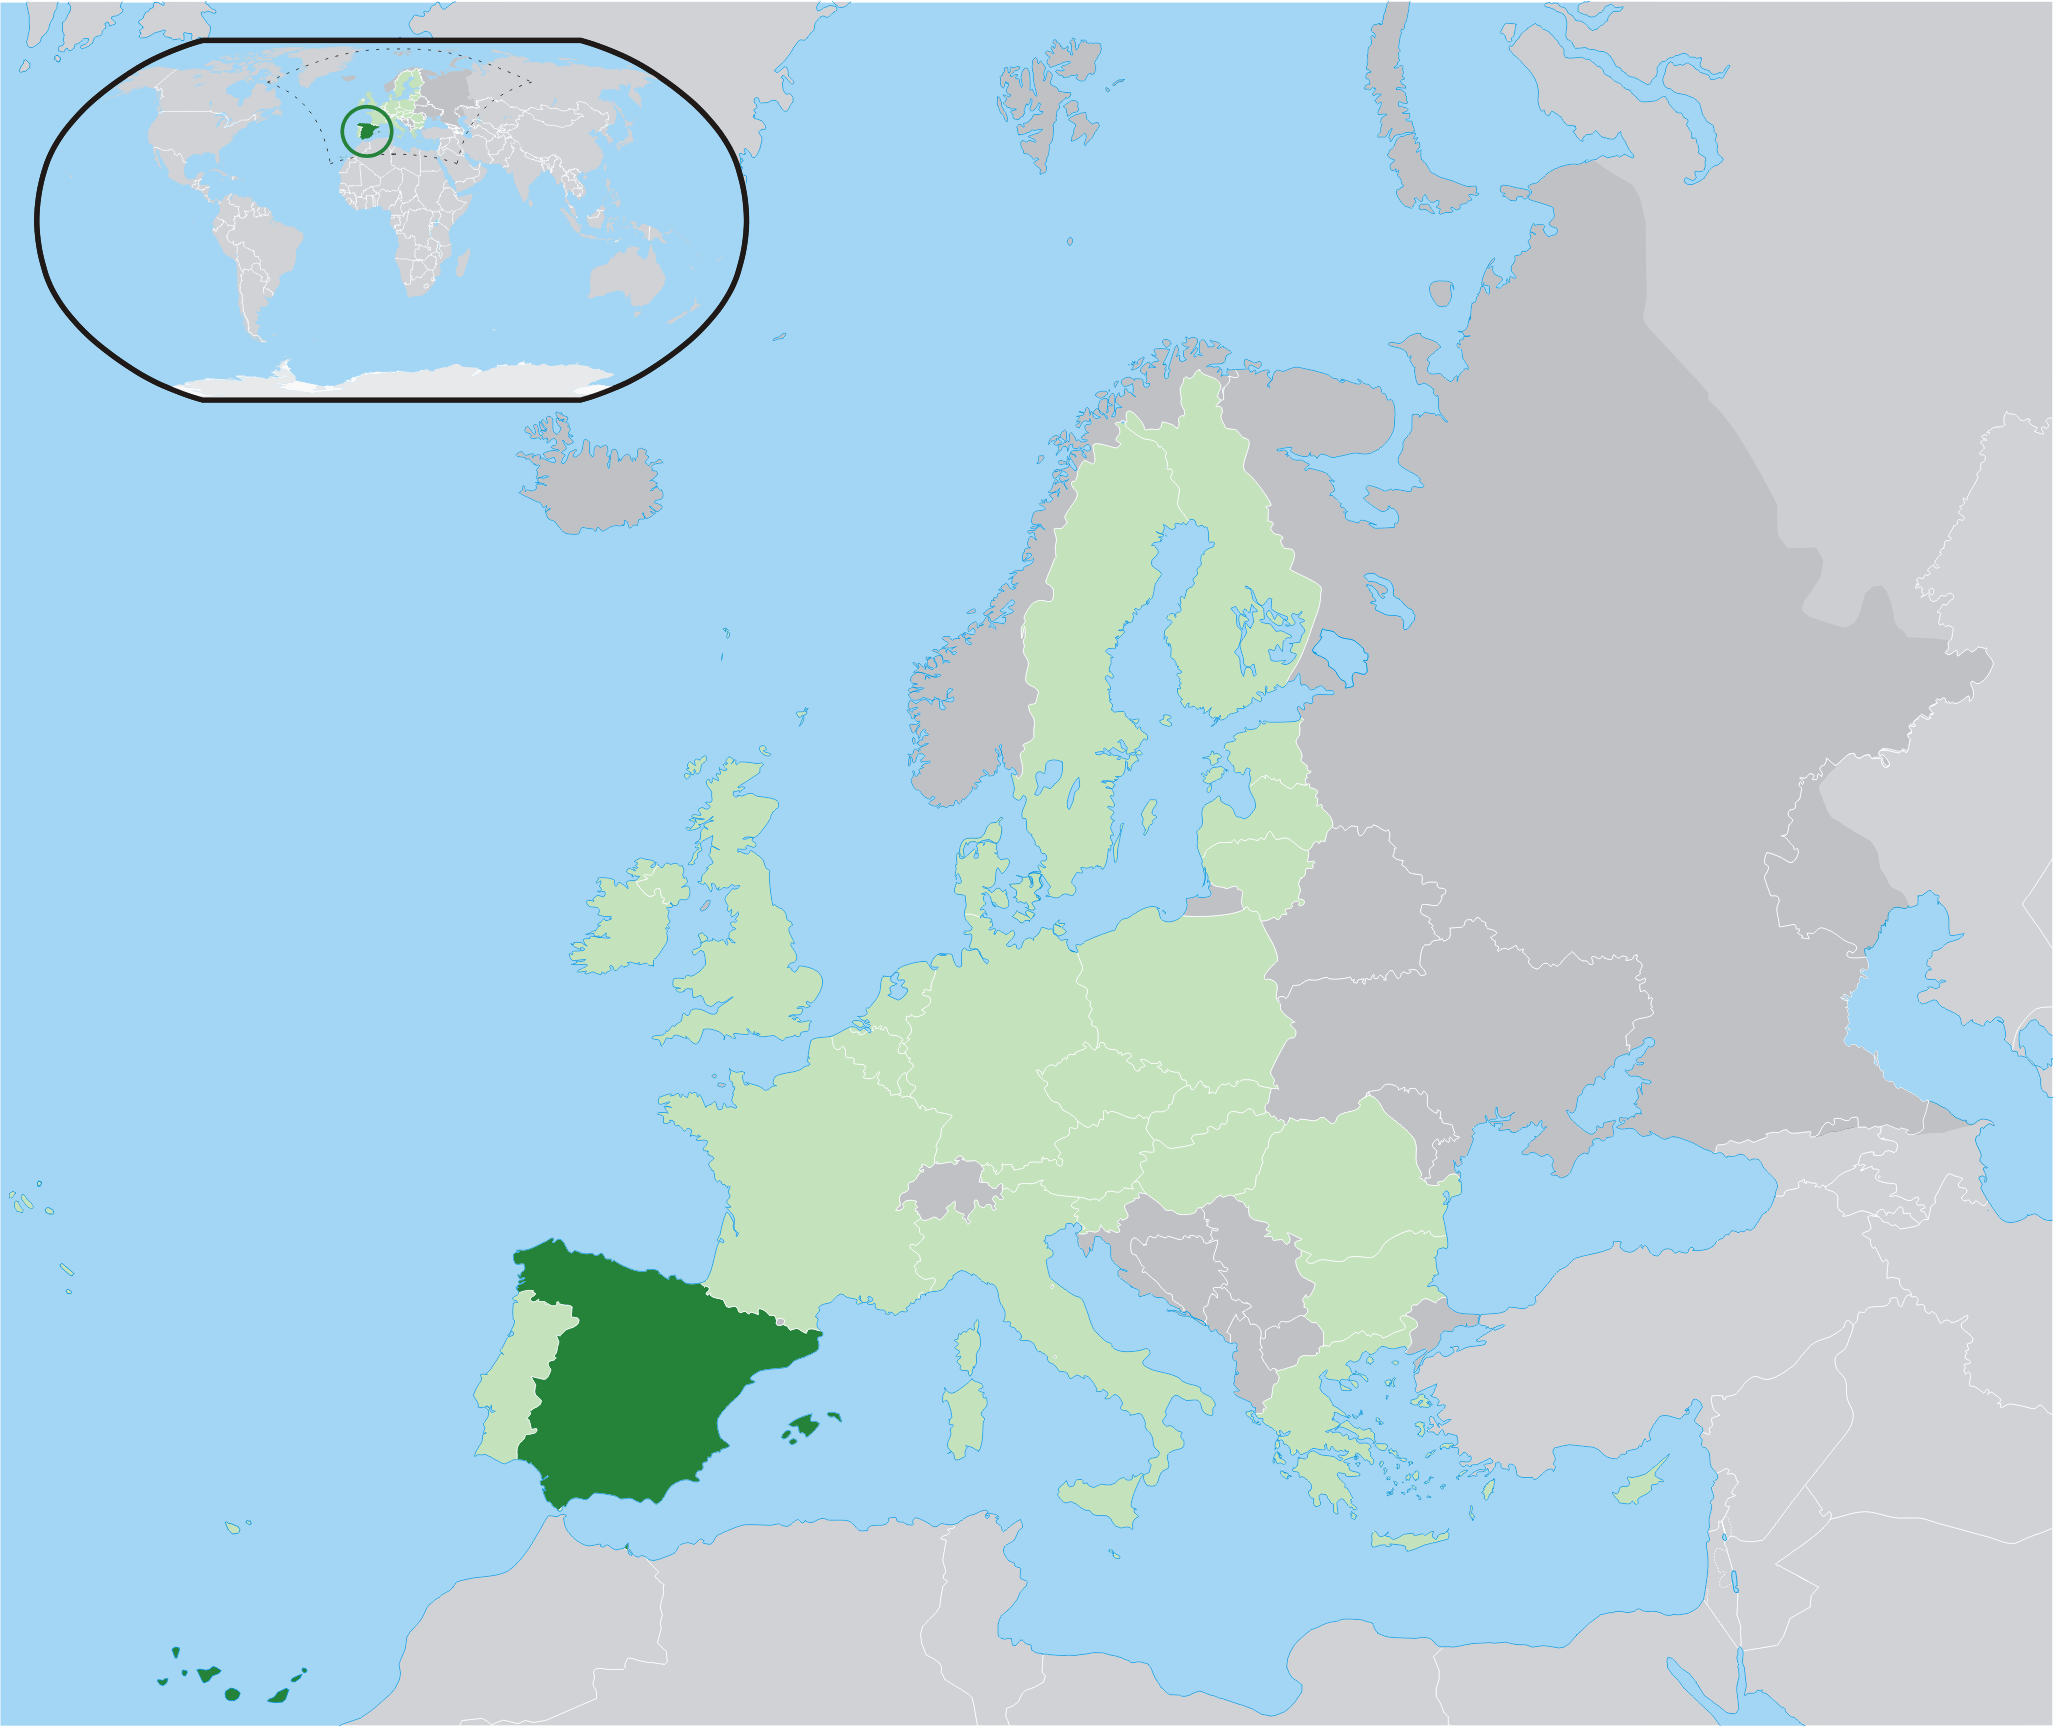 Map Of Spain And Europe.File Location Spain Eu Europe 2 Png Wikipedia